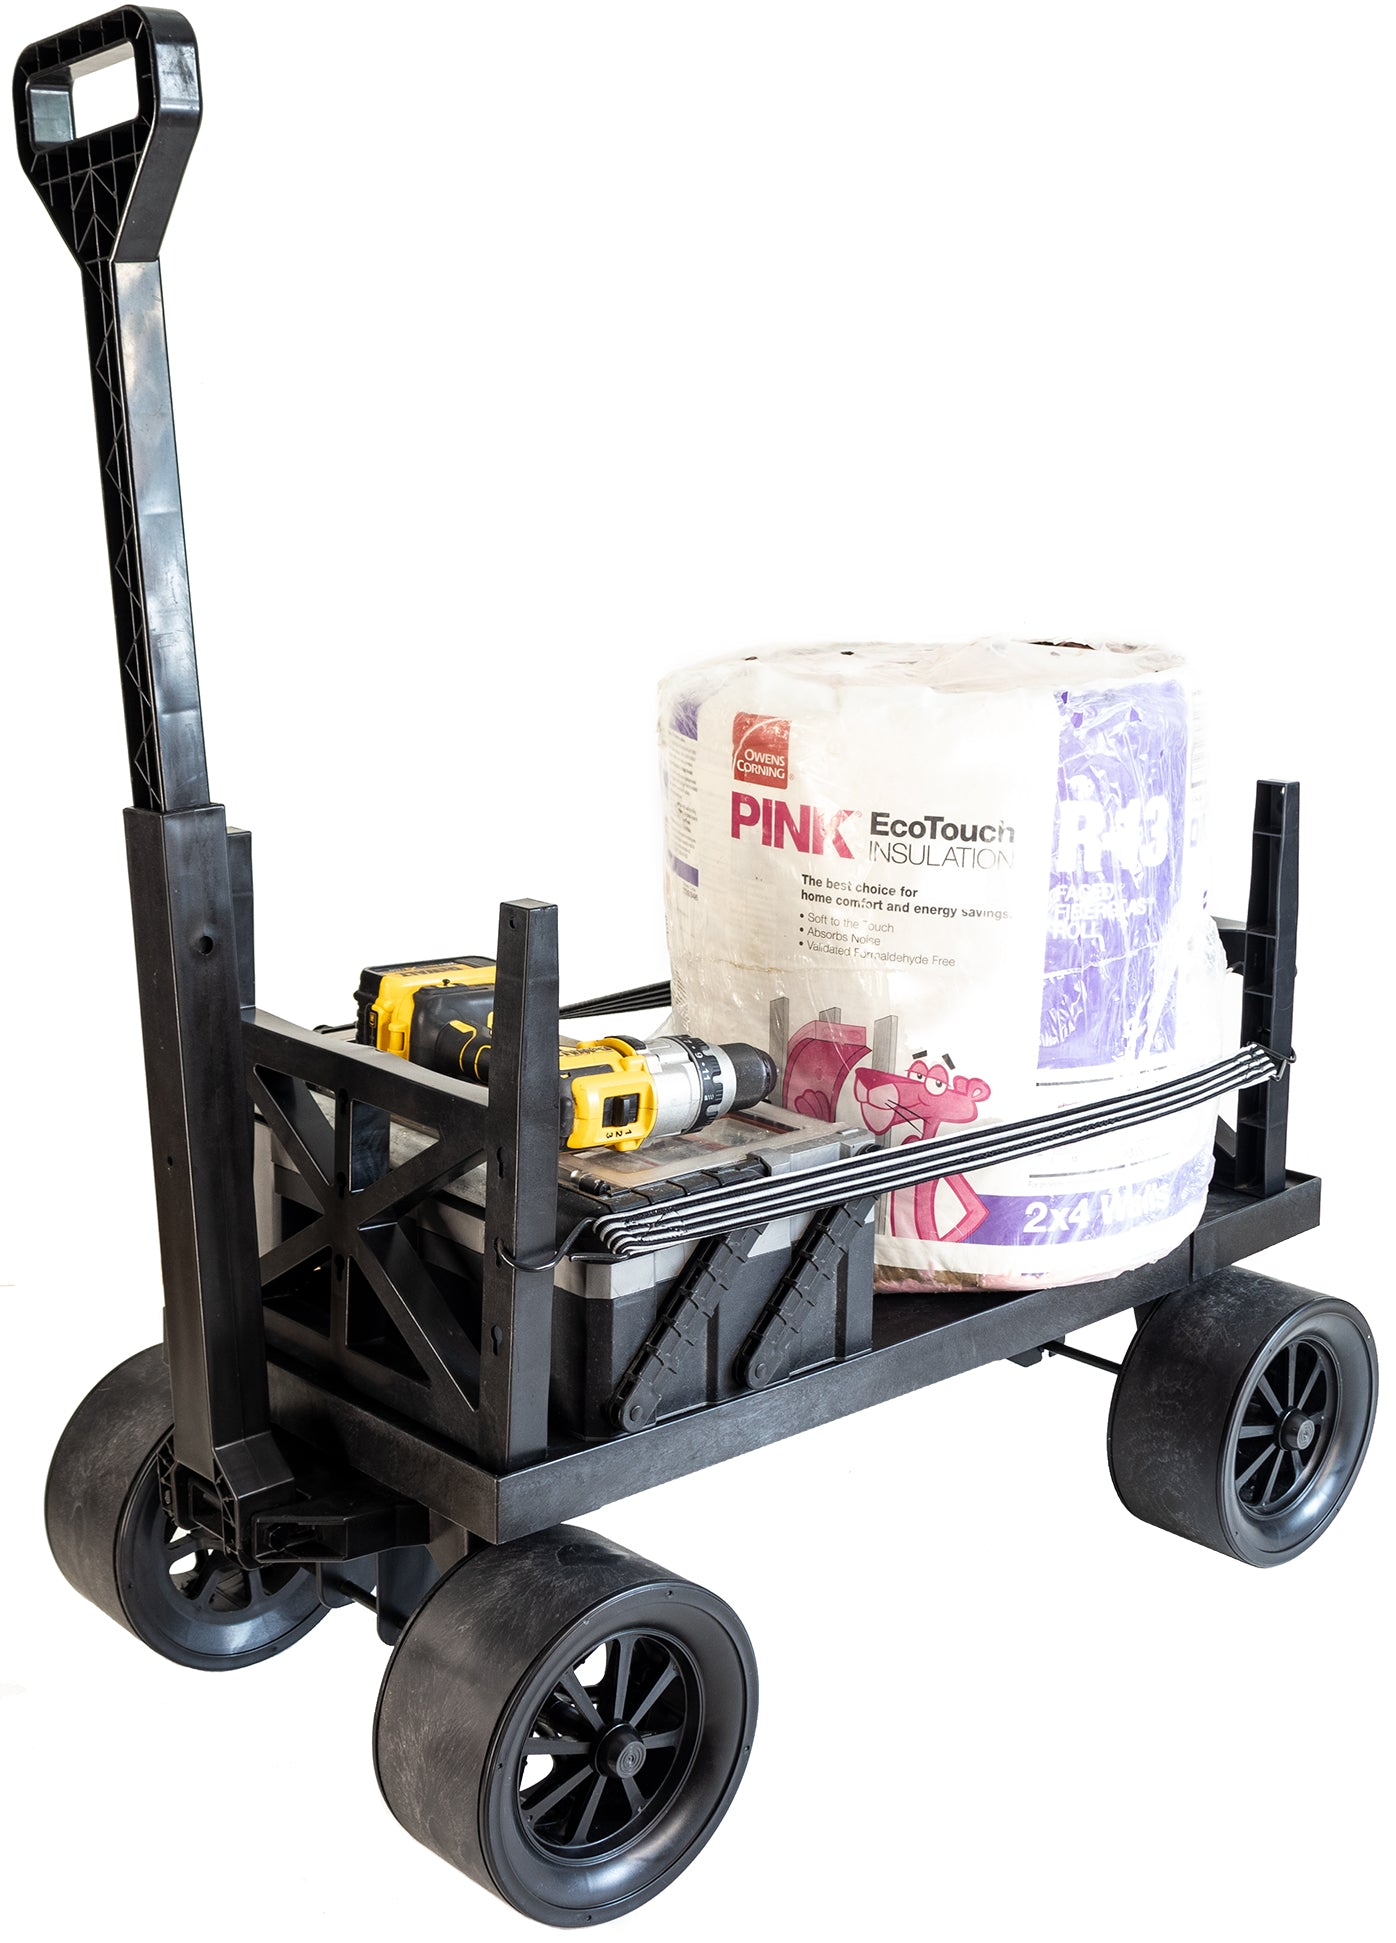 Mighty-max-dolly-tool-flatbed-construction-hand-truck-cart